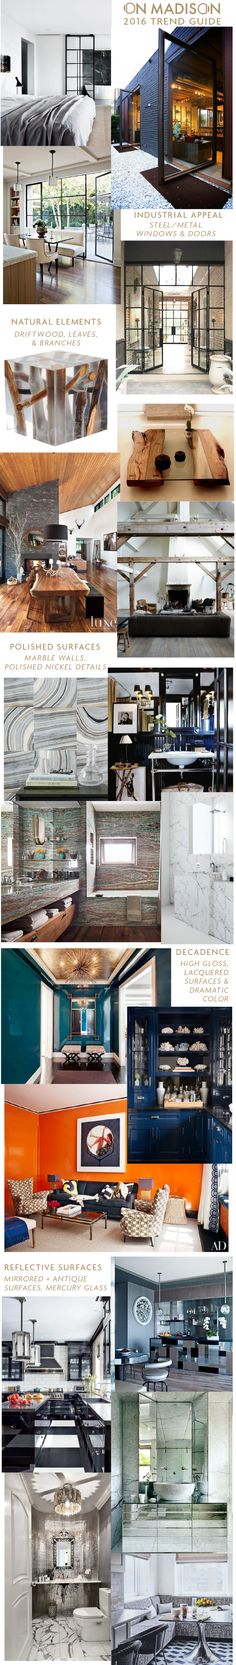 2016 Interior Design Trends via the Madison Modern Blog